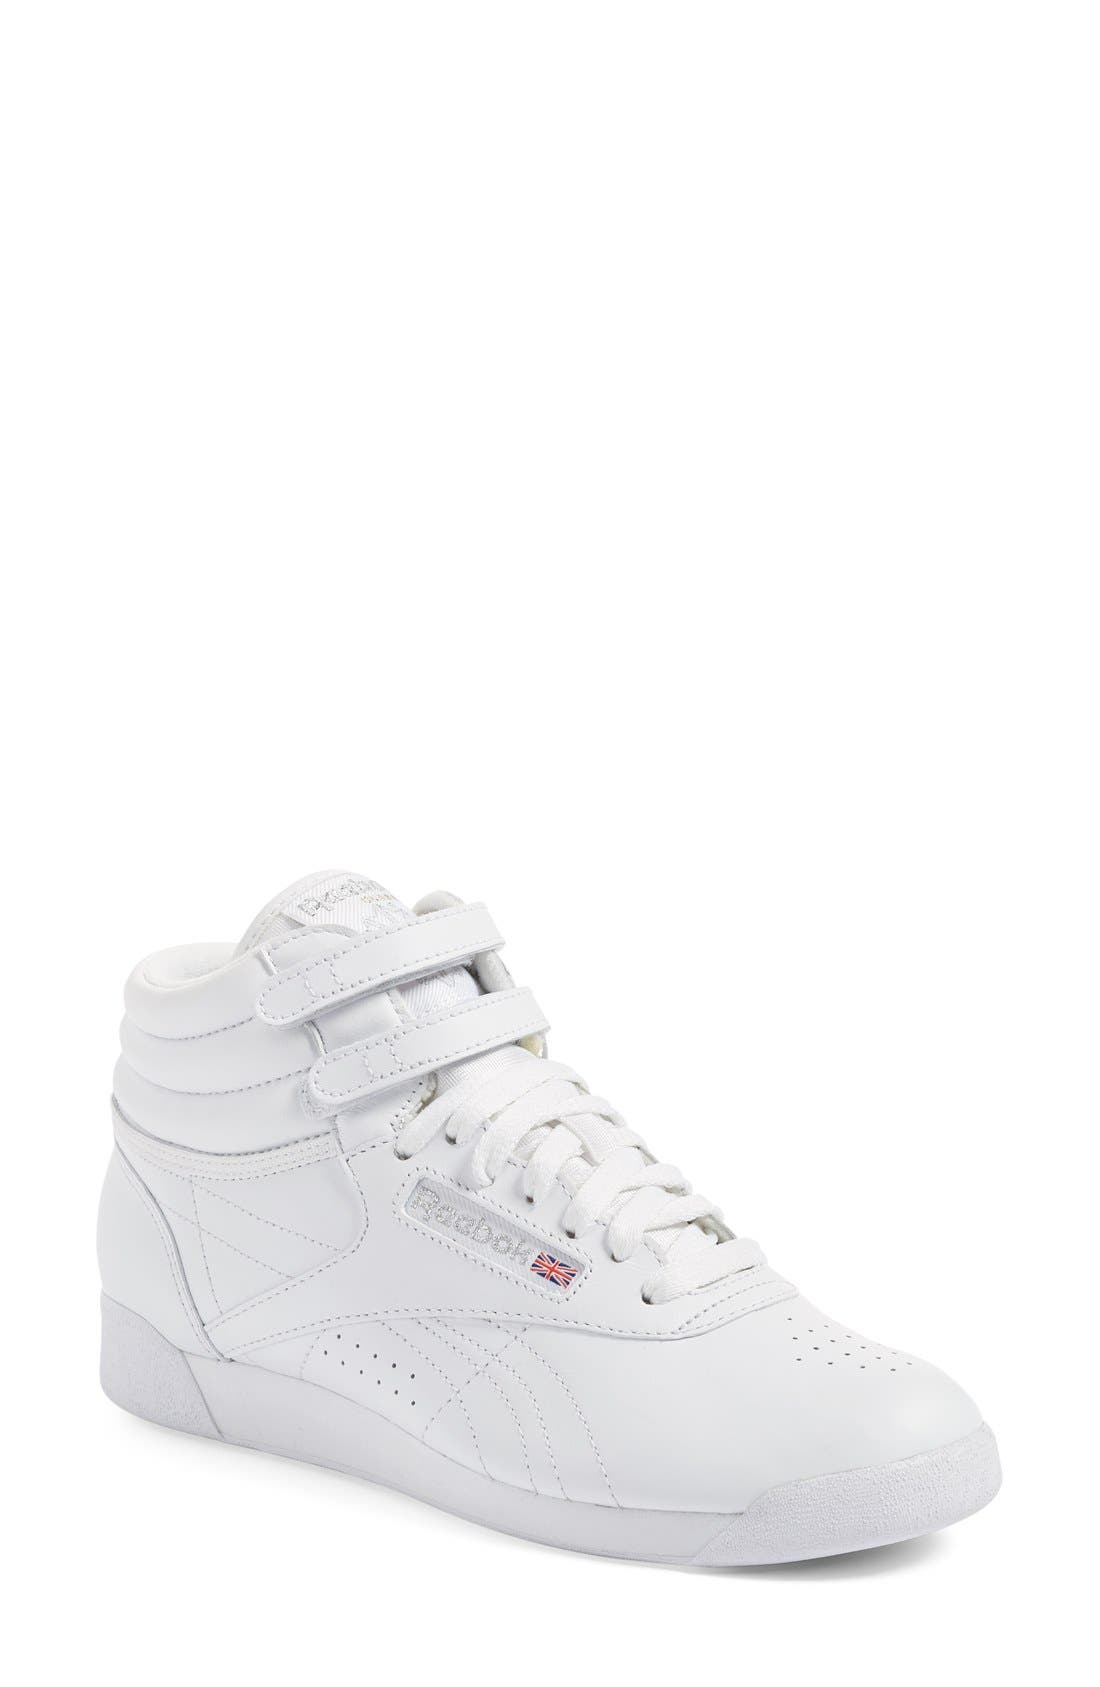 Main Image - Reebok 'Freestyle Hi' Sneaker (Women)